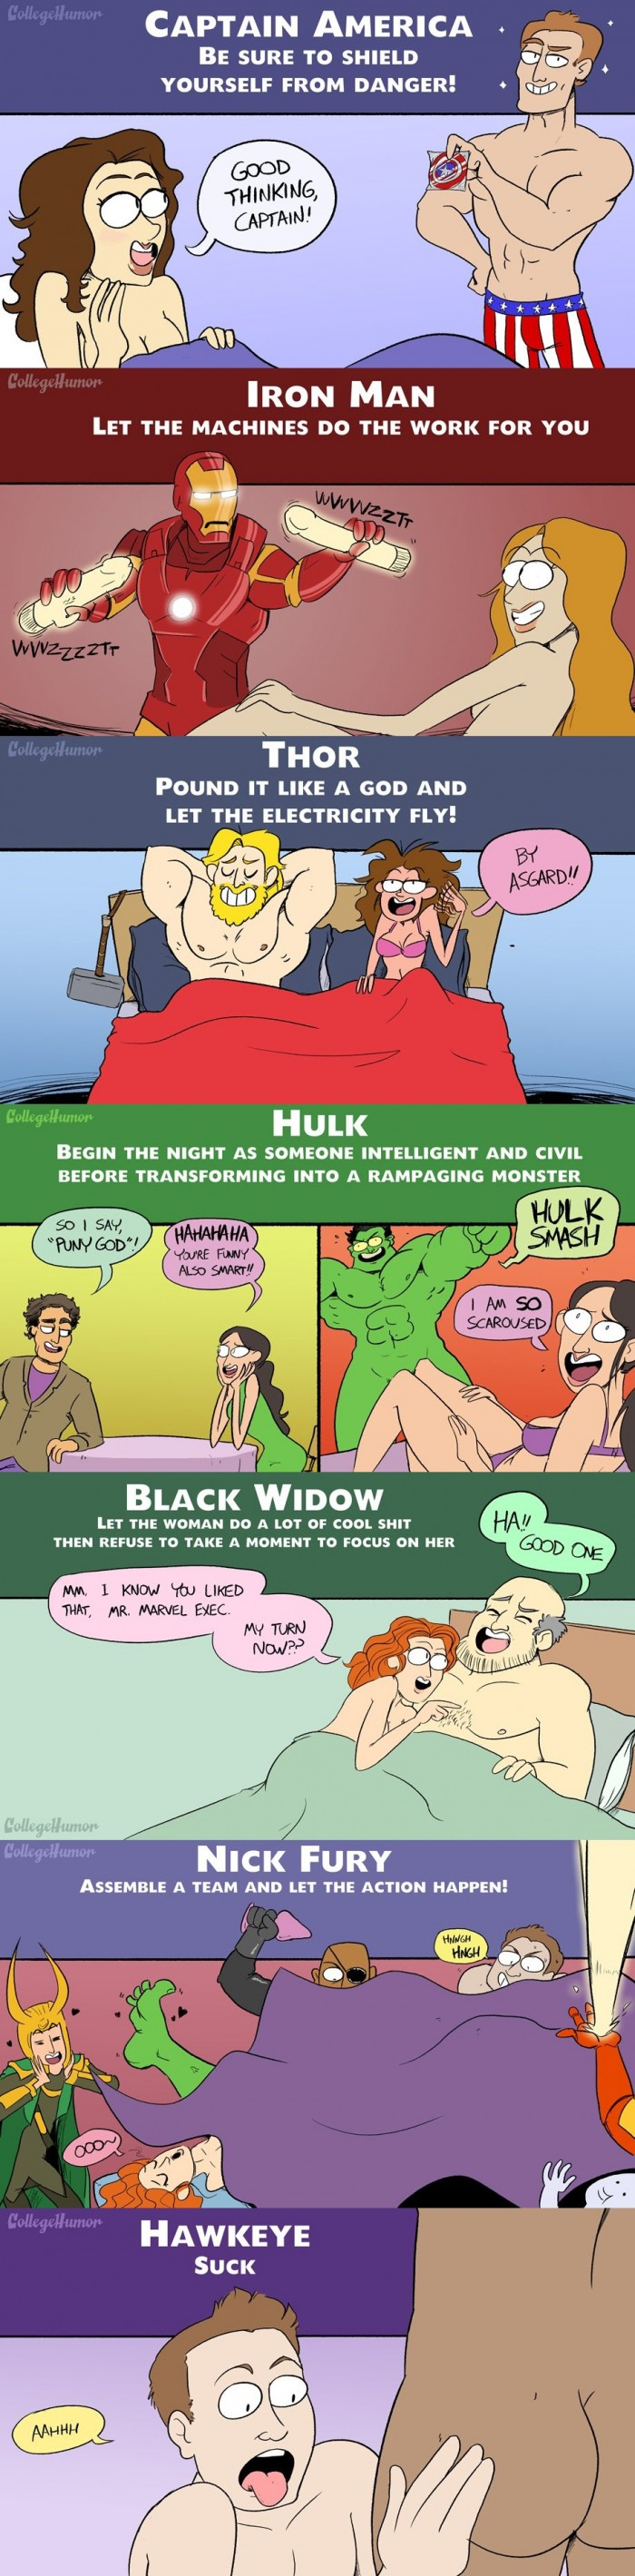 The Avengers in Bed